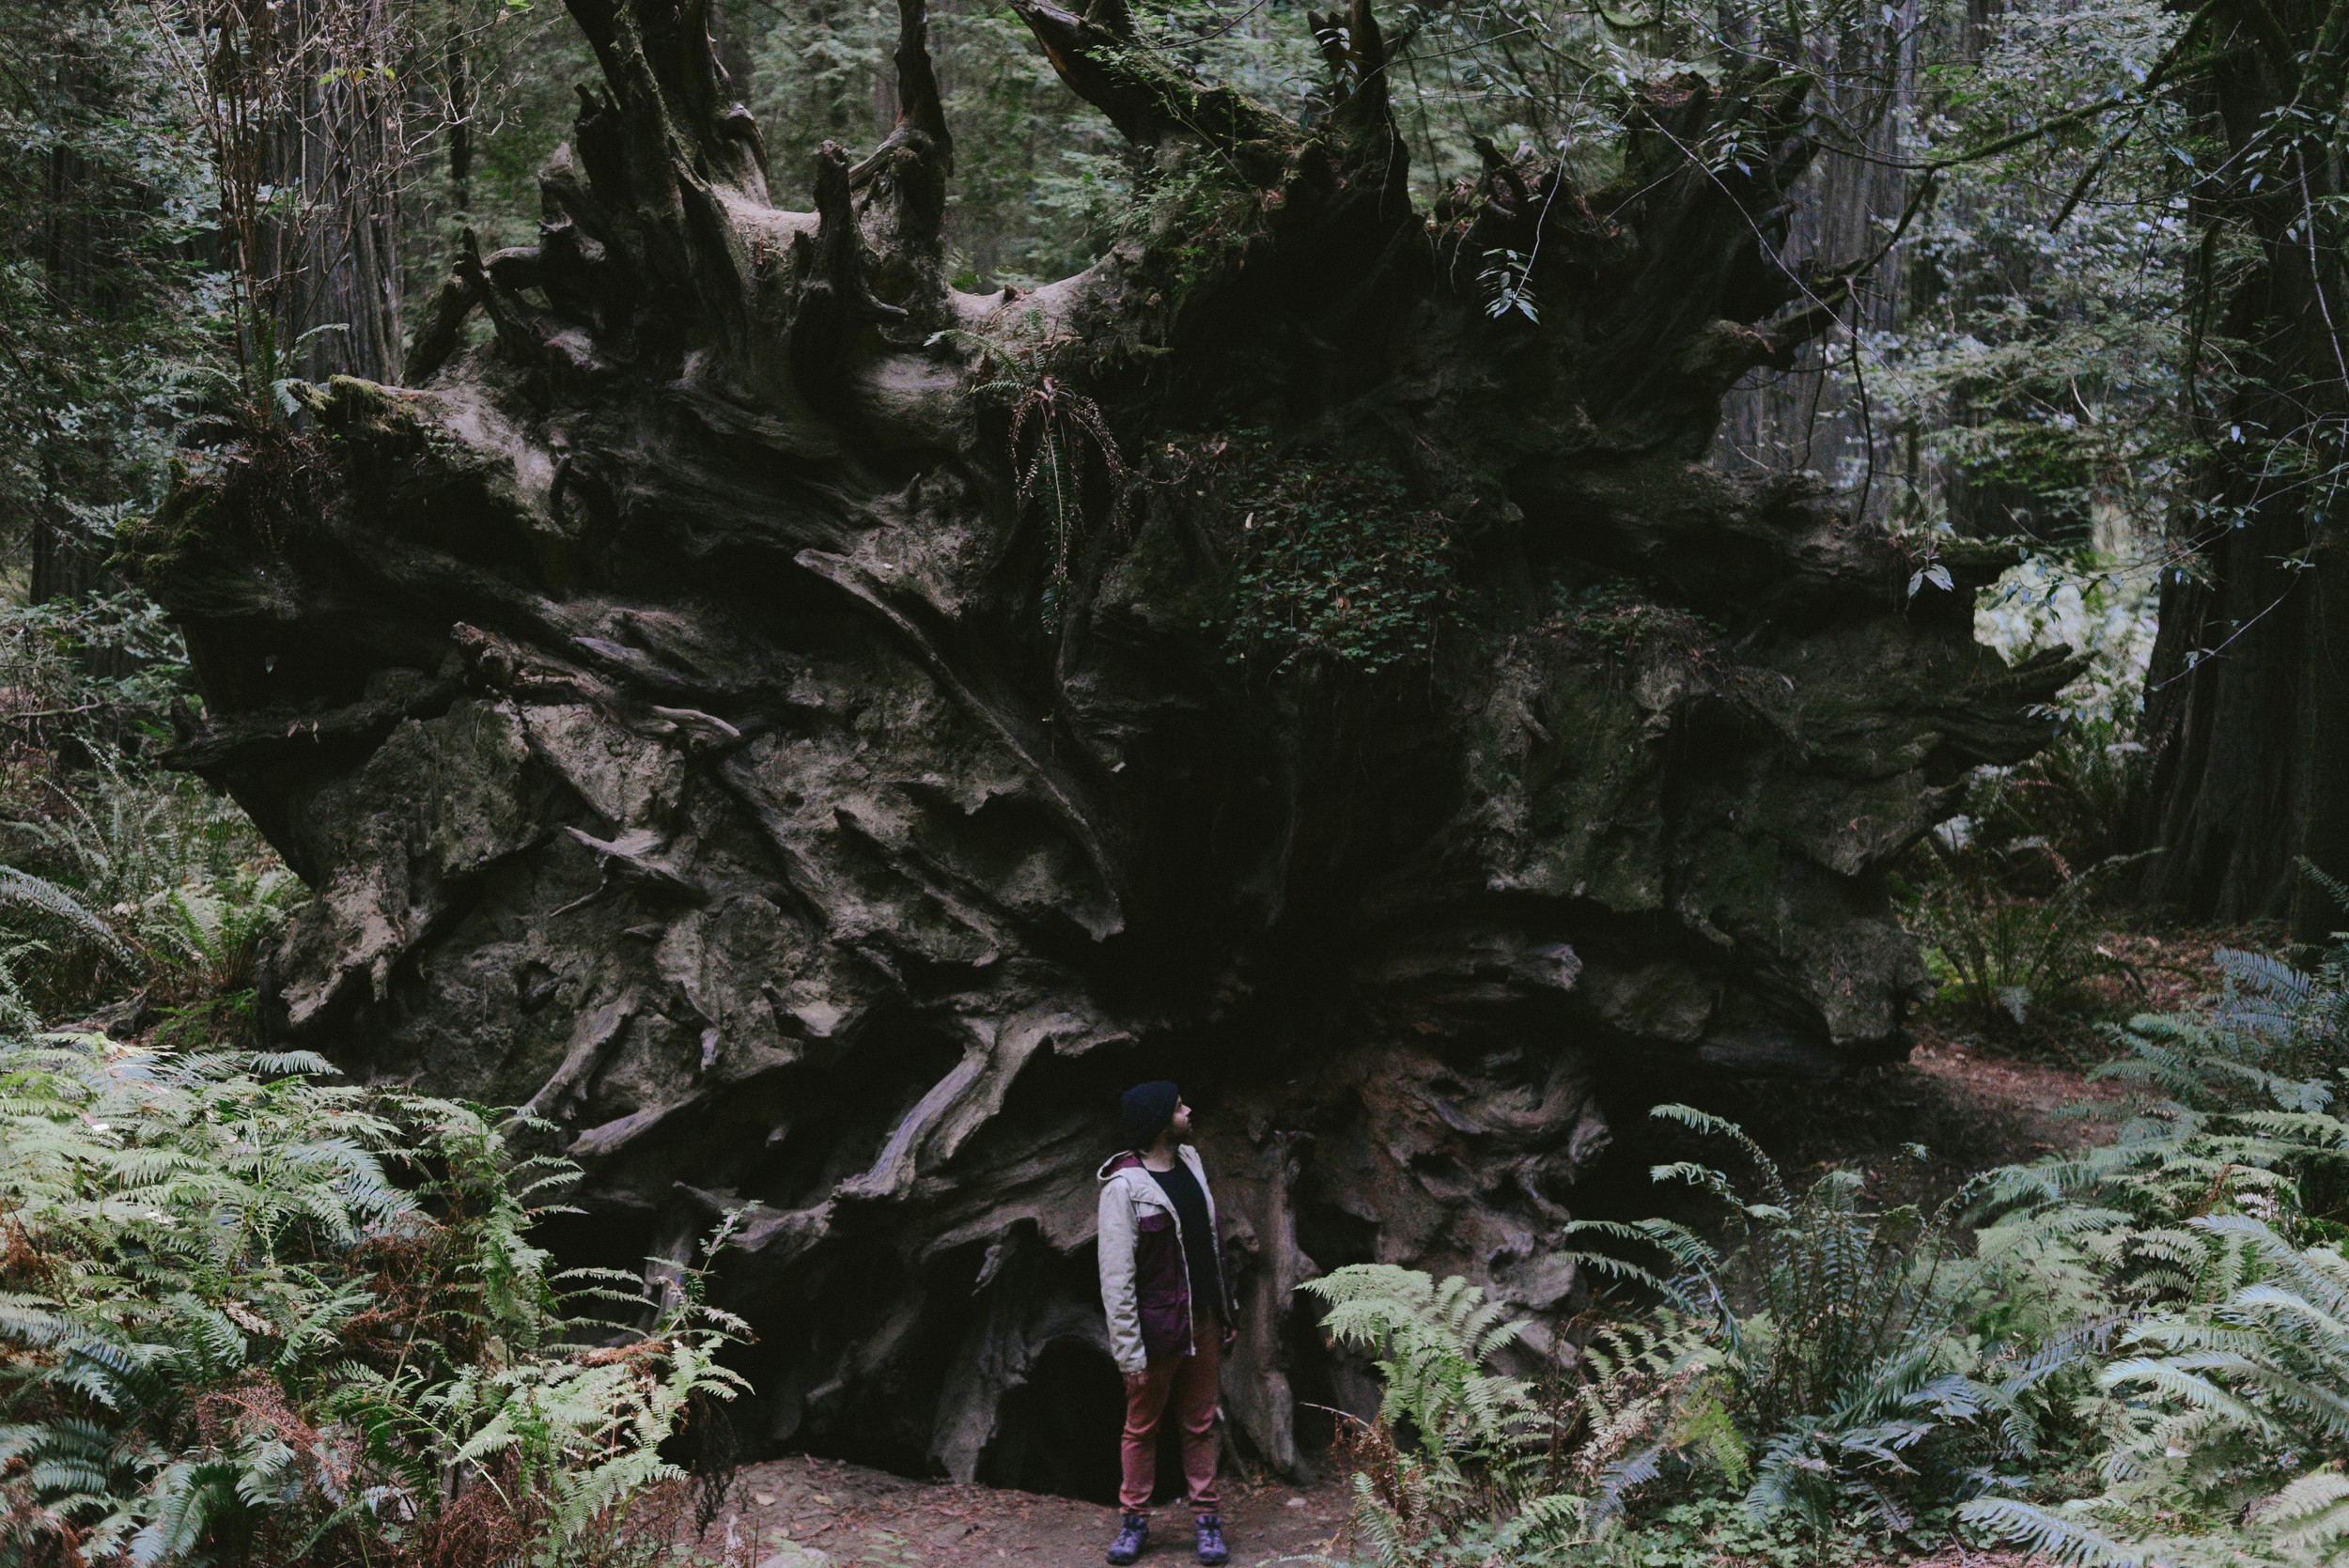 Jonny dwarfed by the 35ft base of a giant redwood tree.